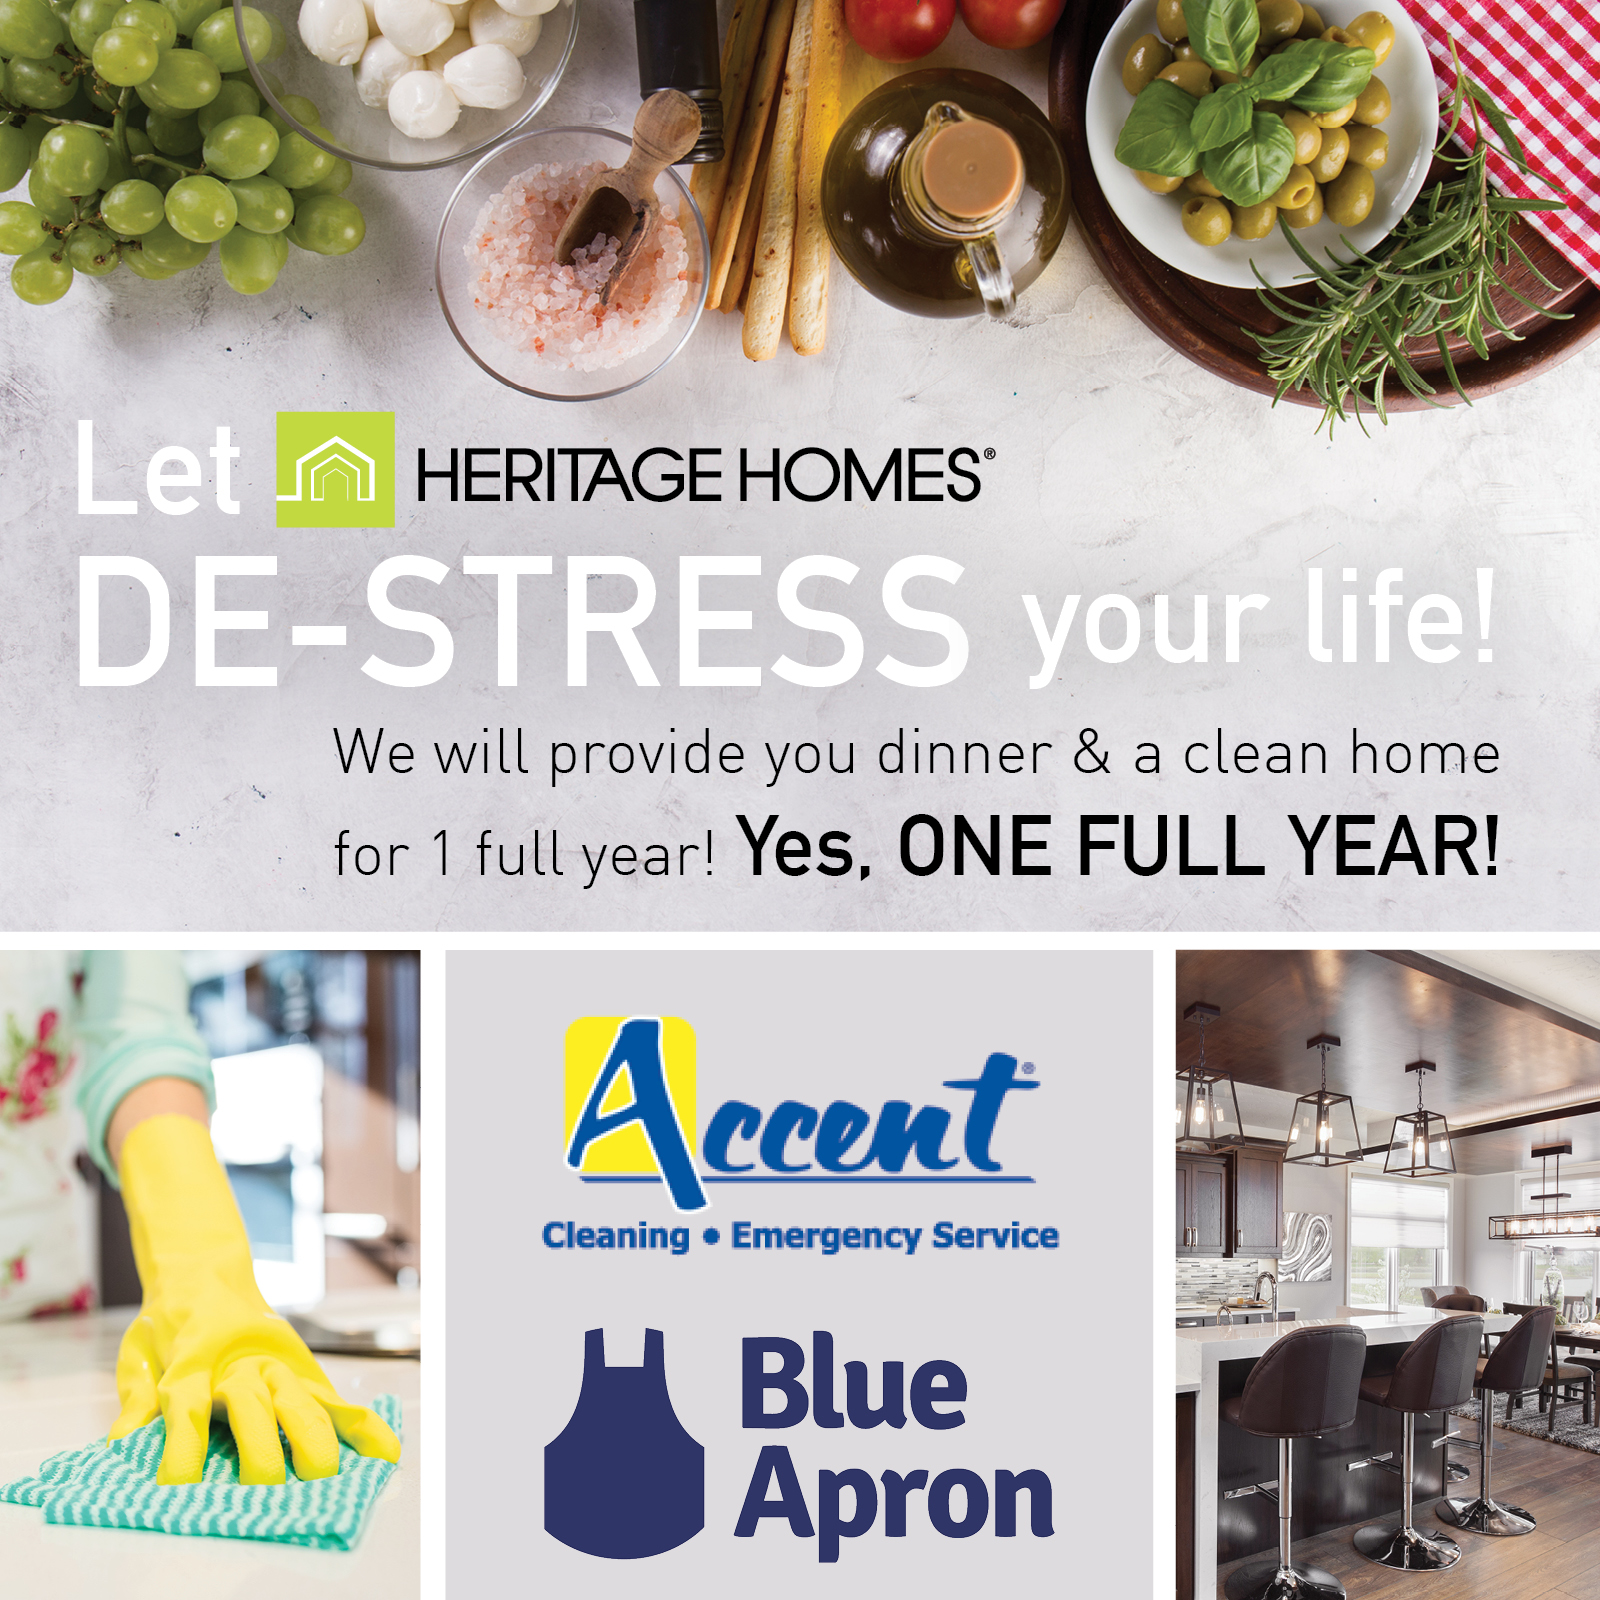 Let Heritage Homes De-Stress Your Life!